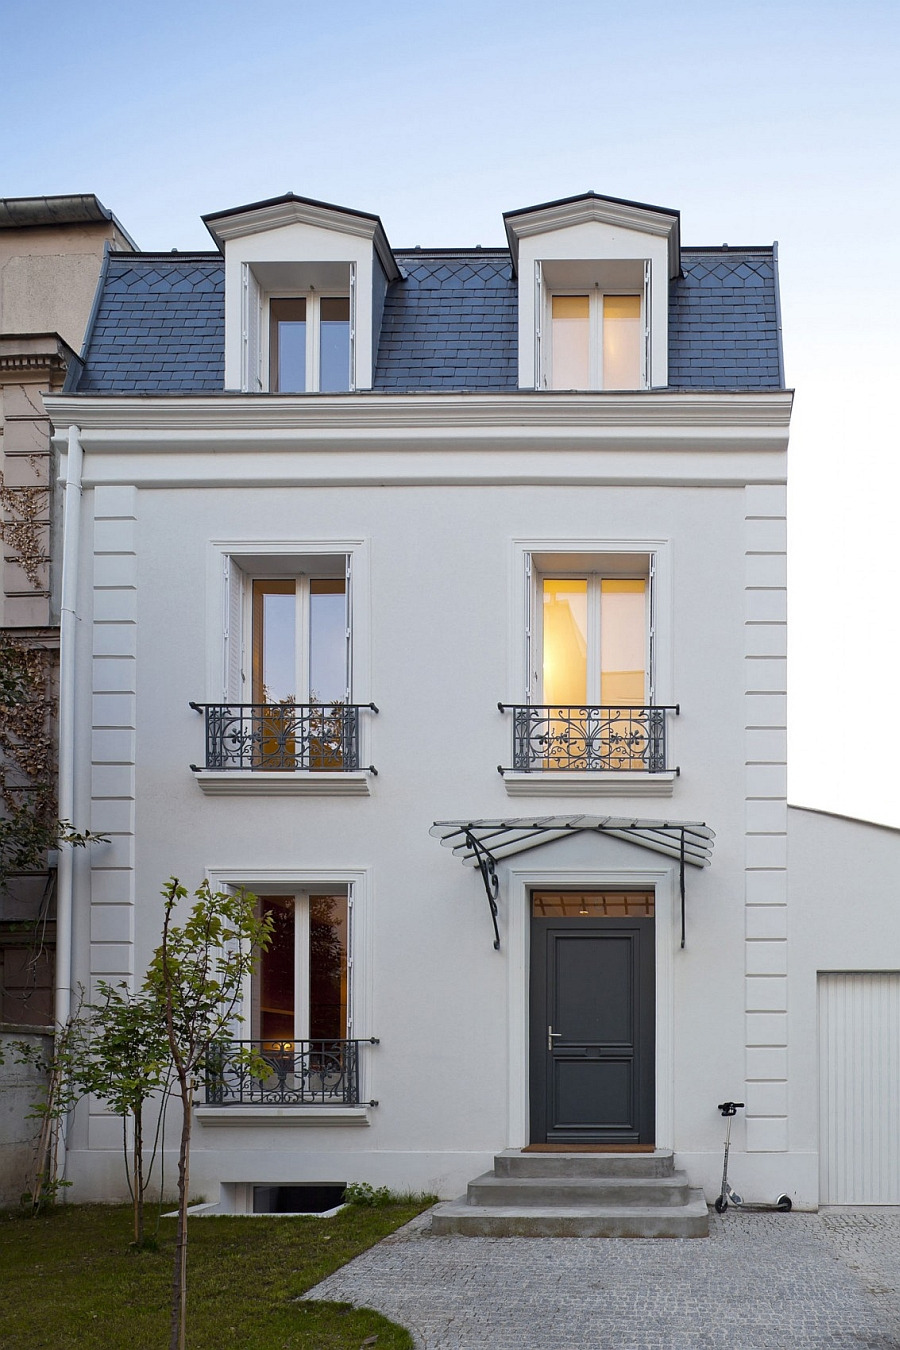 Street facade of the classic house in Vincennes France